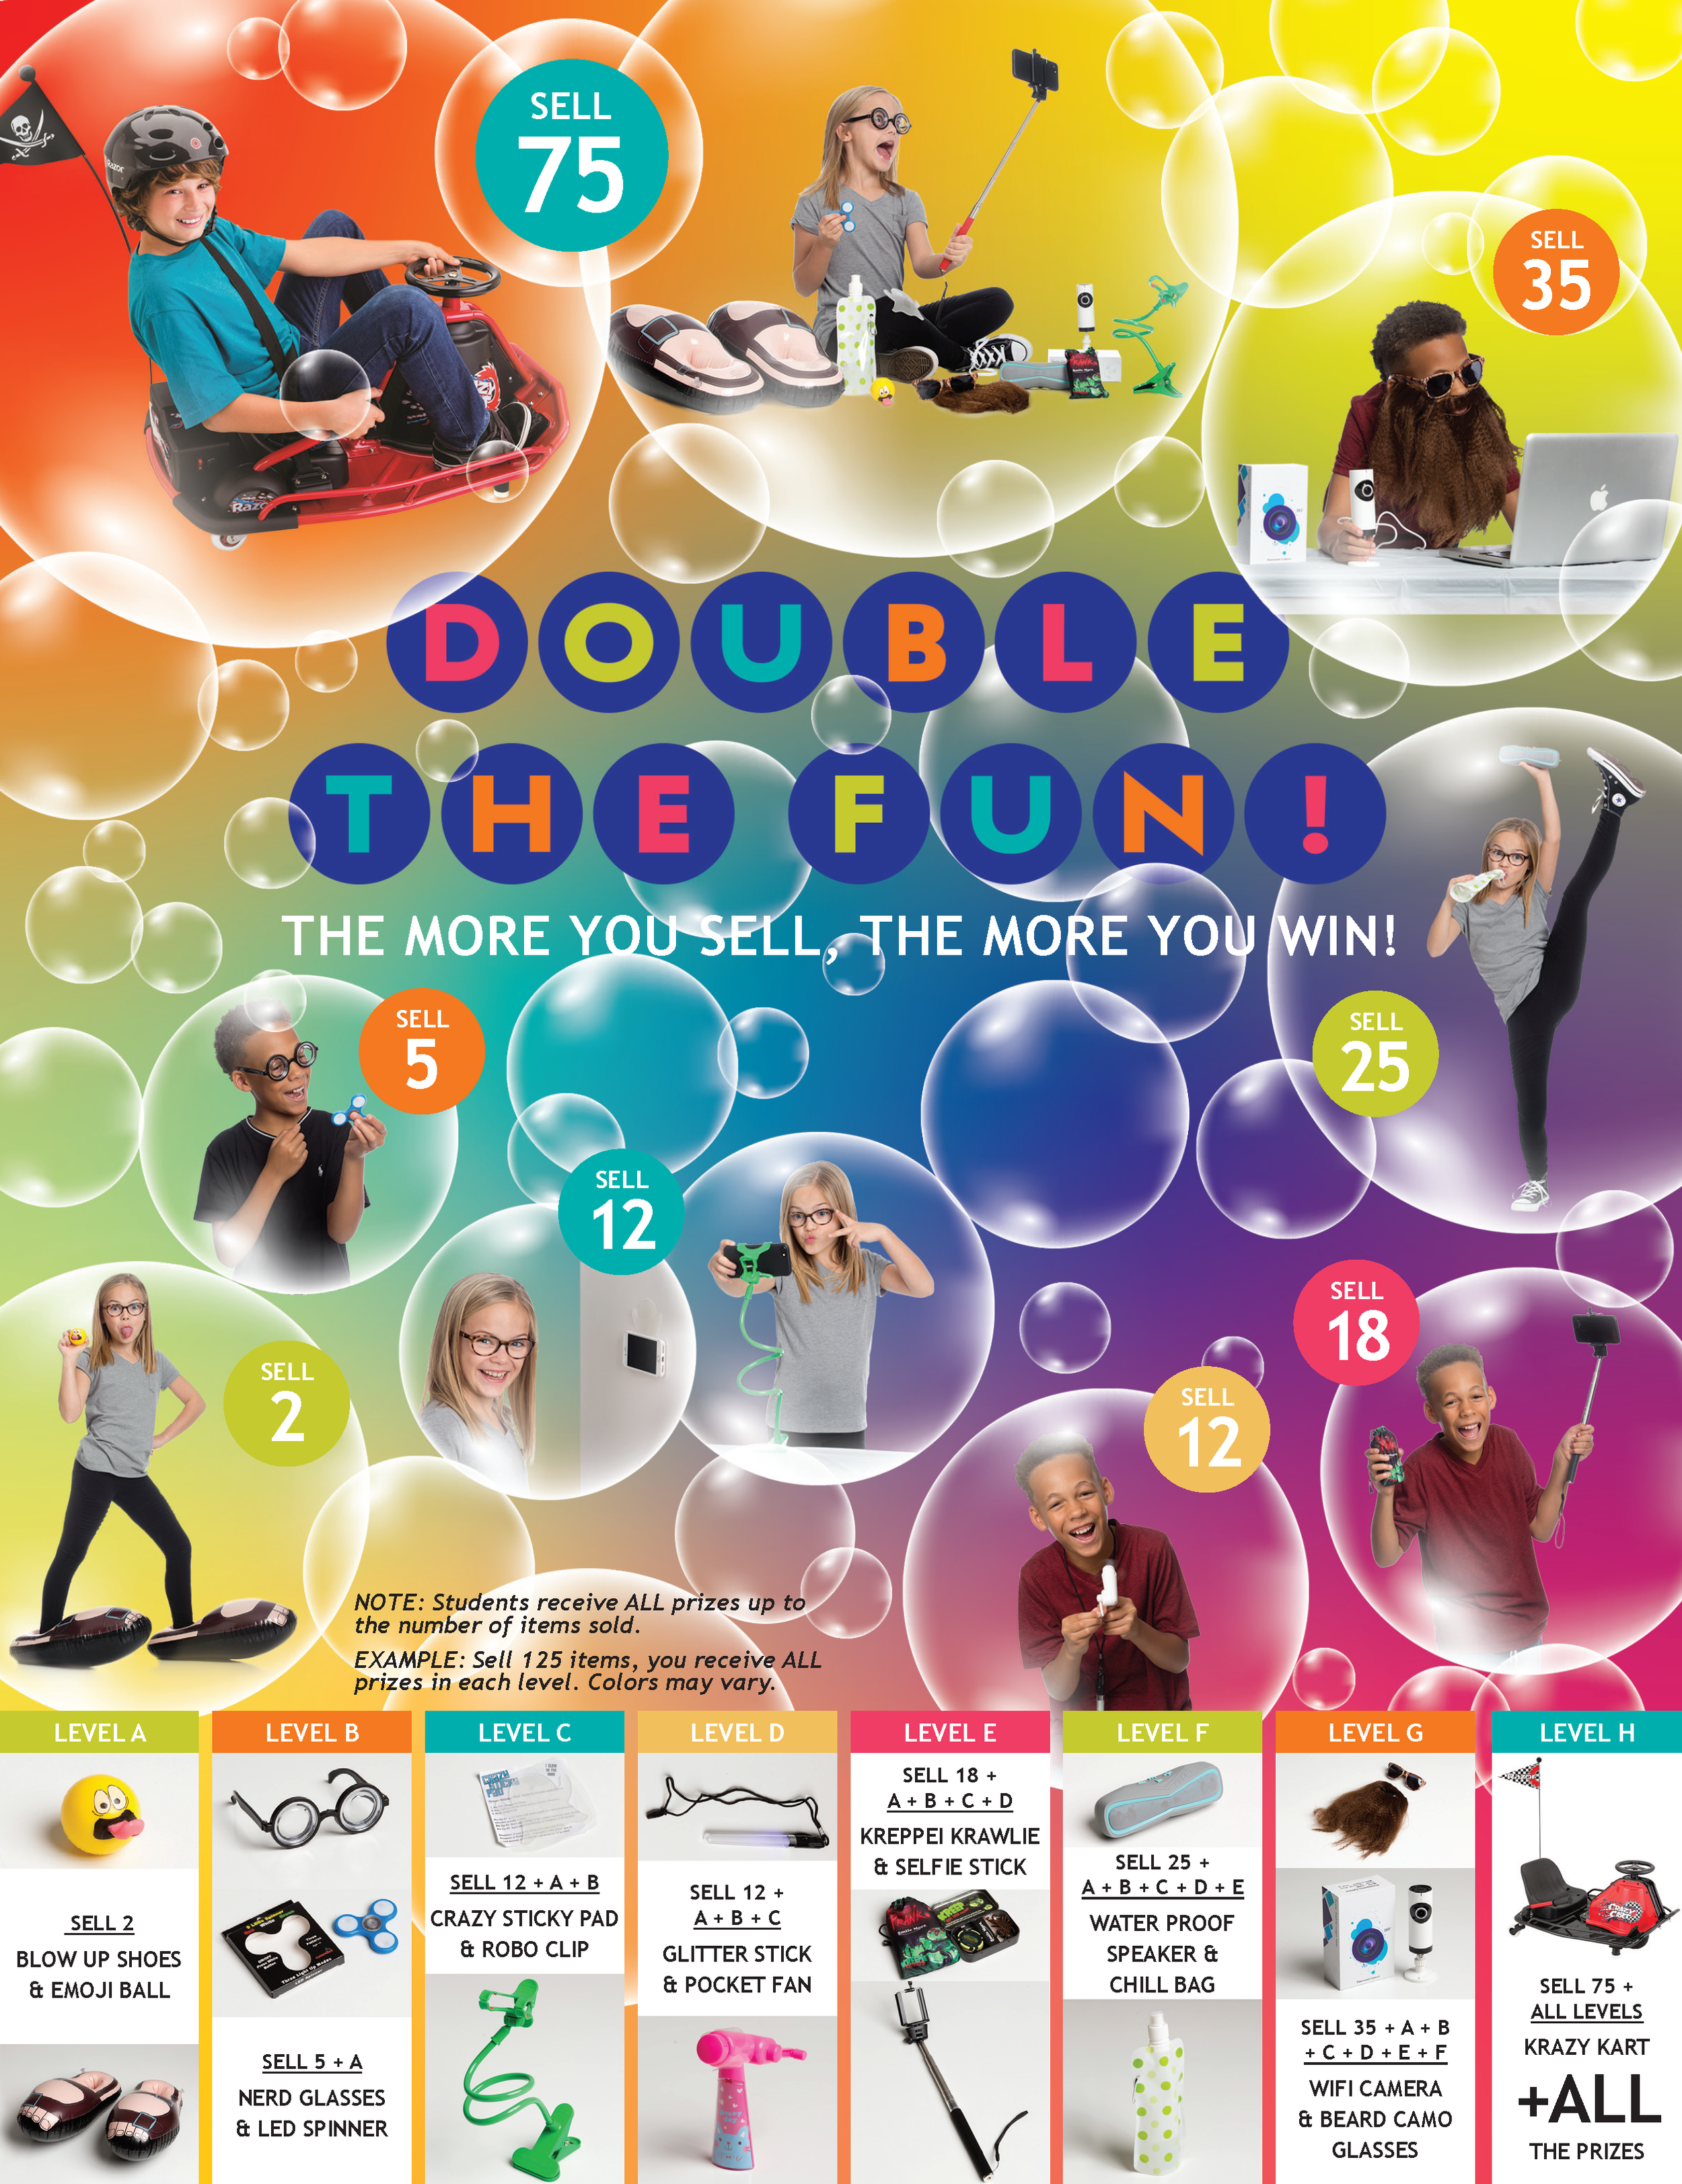 GAO_DoubleTheFun_Flyer_4.png